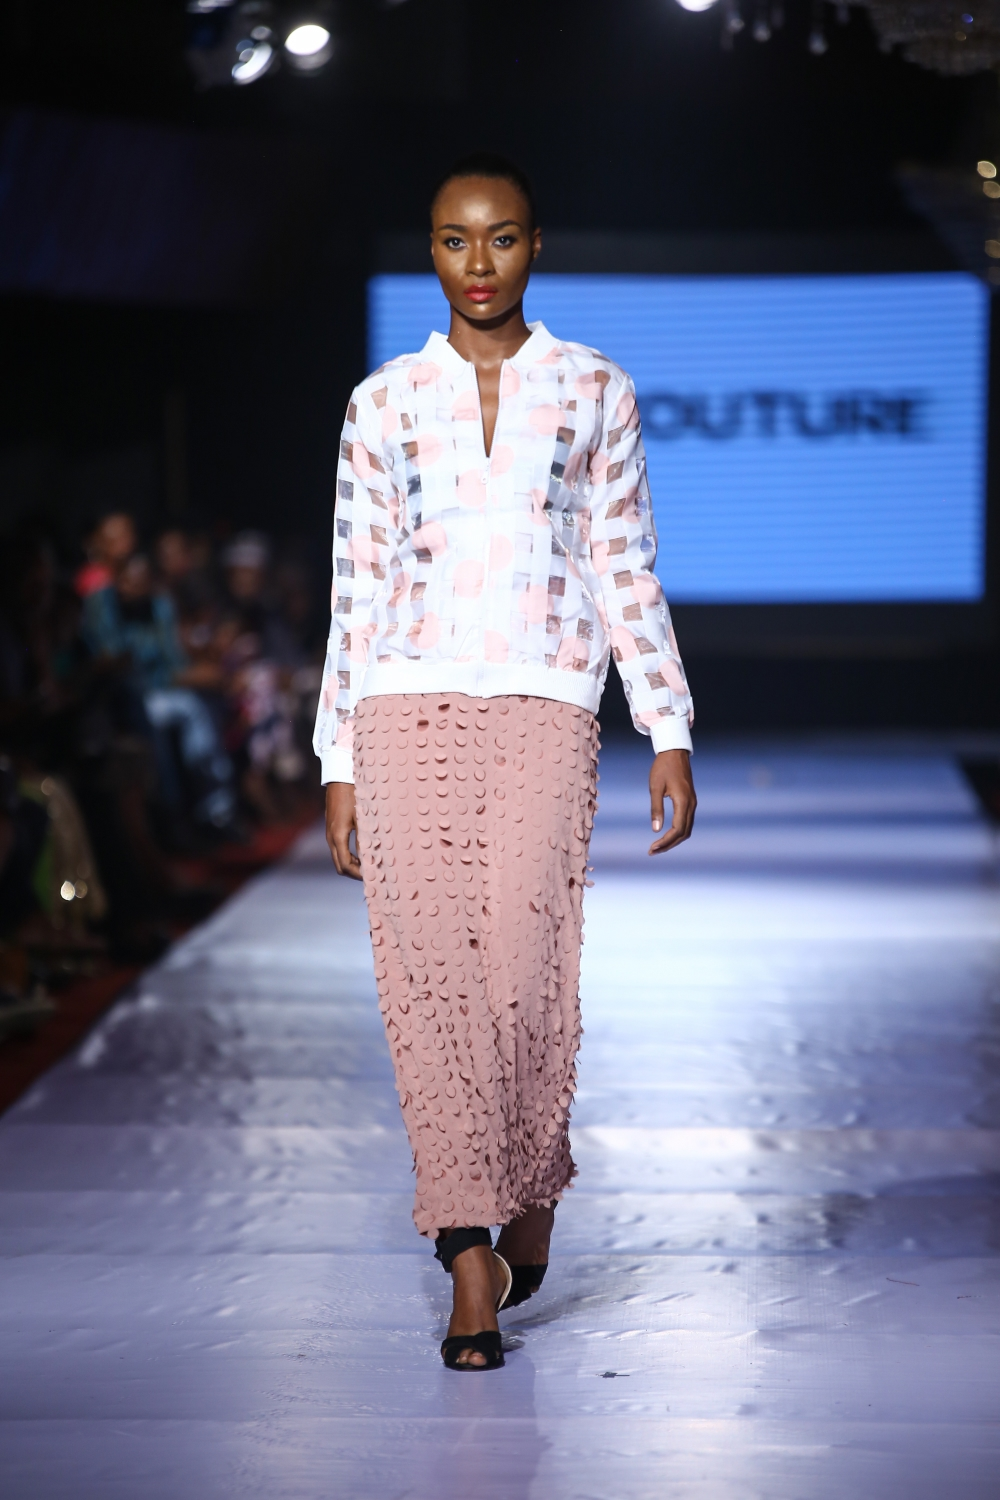 #AFWN17 | Africa Fashion Week Nigeria Day 1: Oma Couture